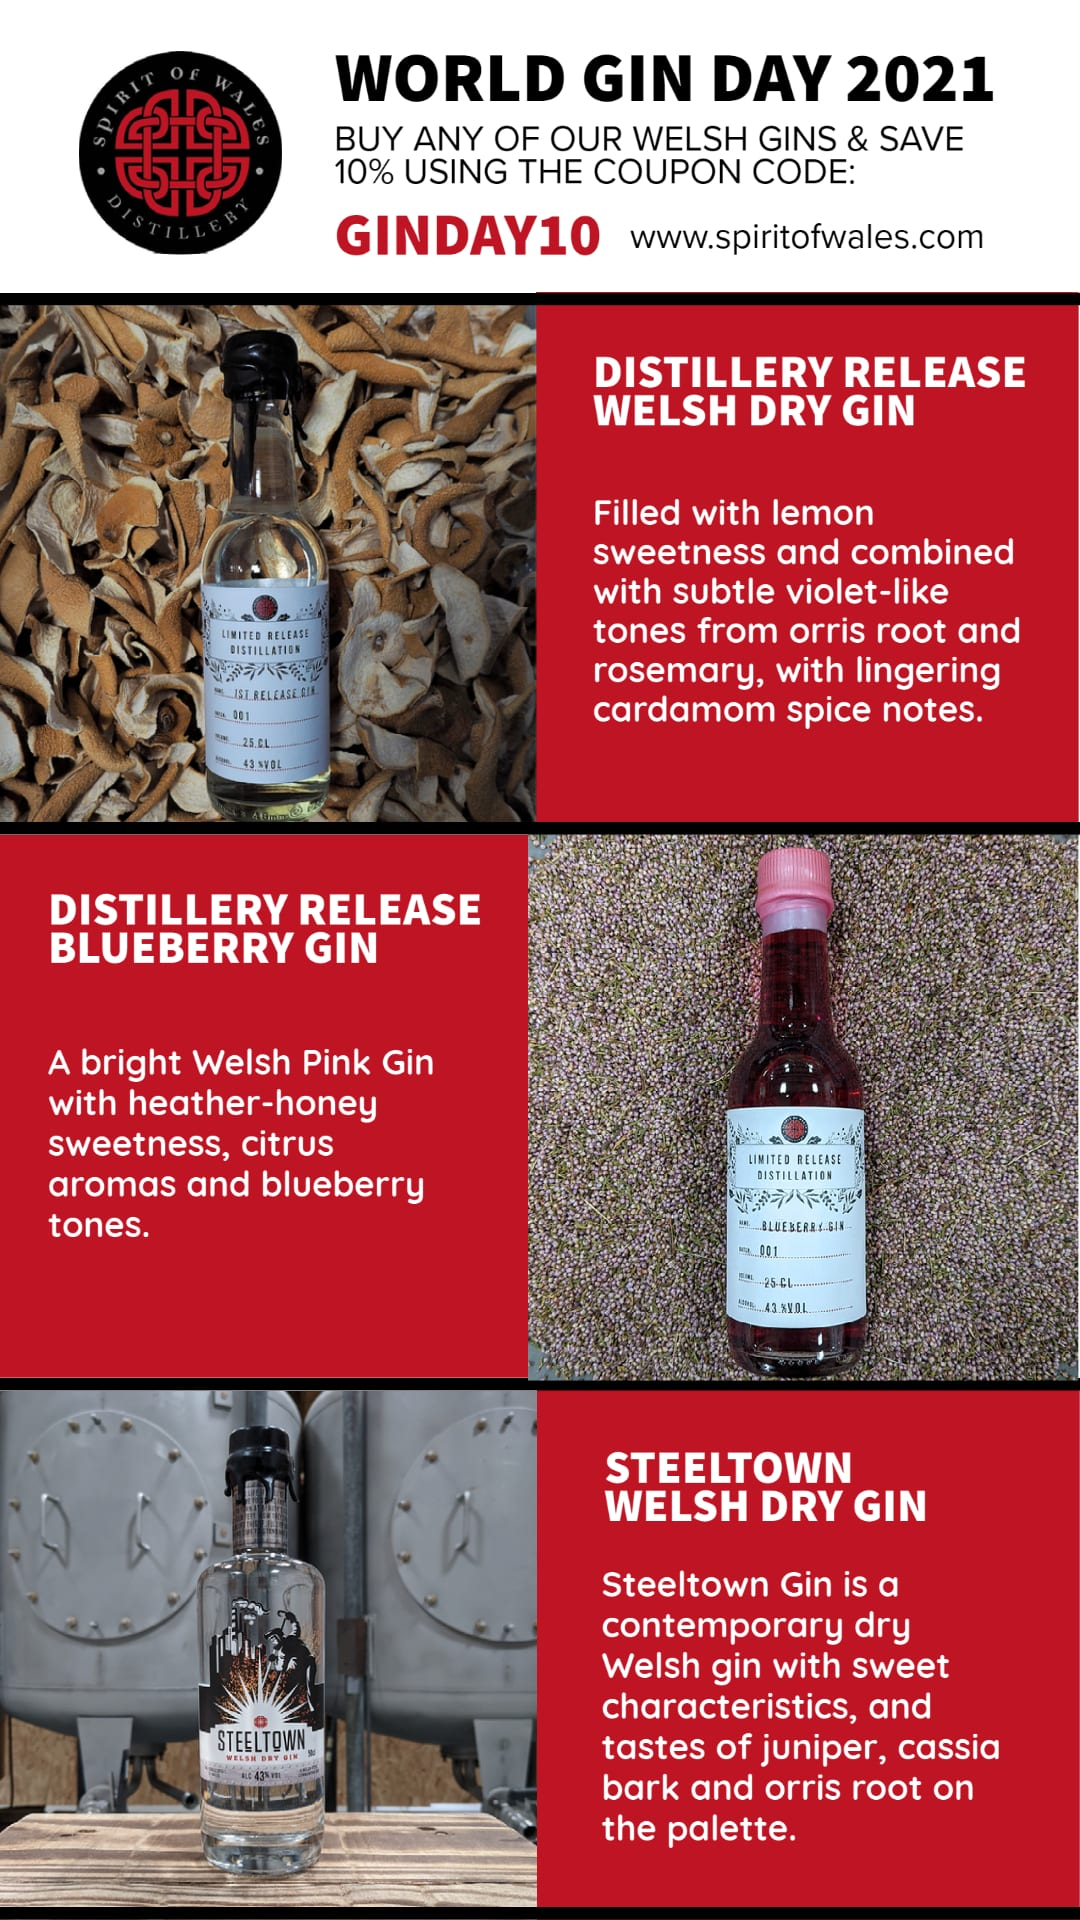 Infographic - World Gin Day Deals from the Spirit of Wales Distillery